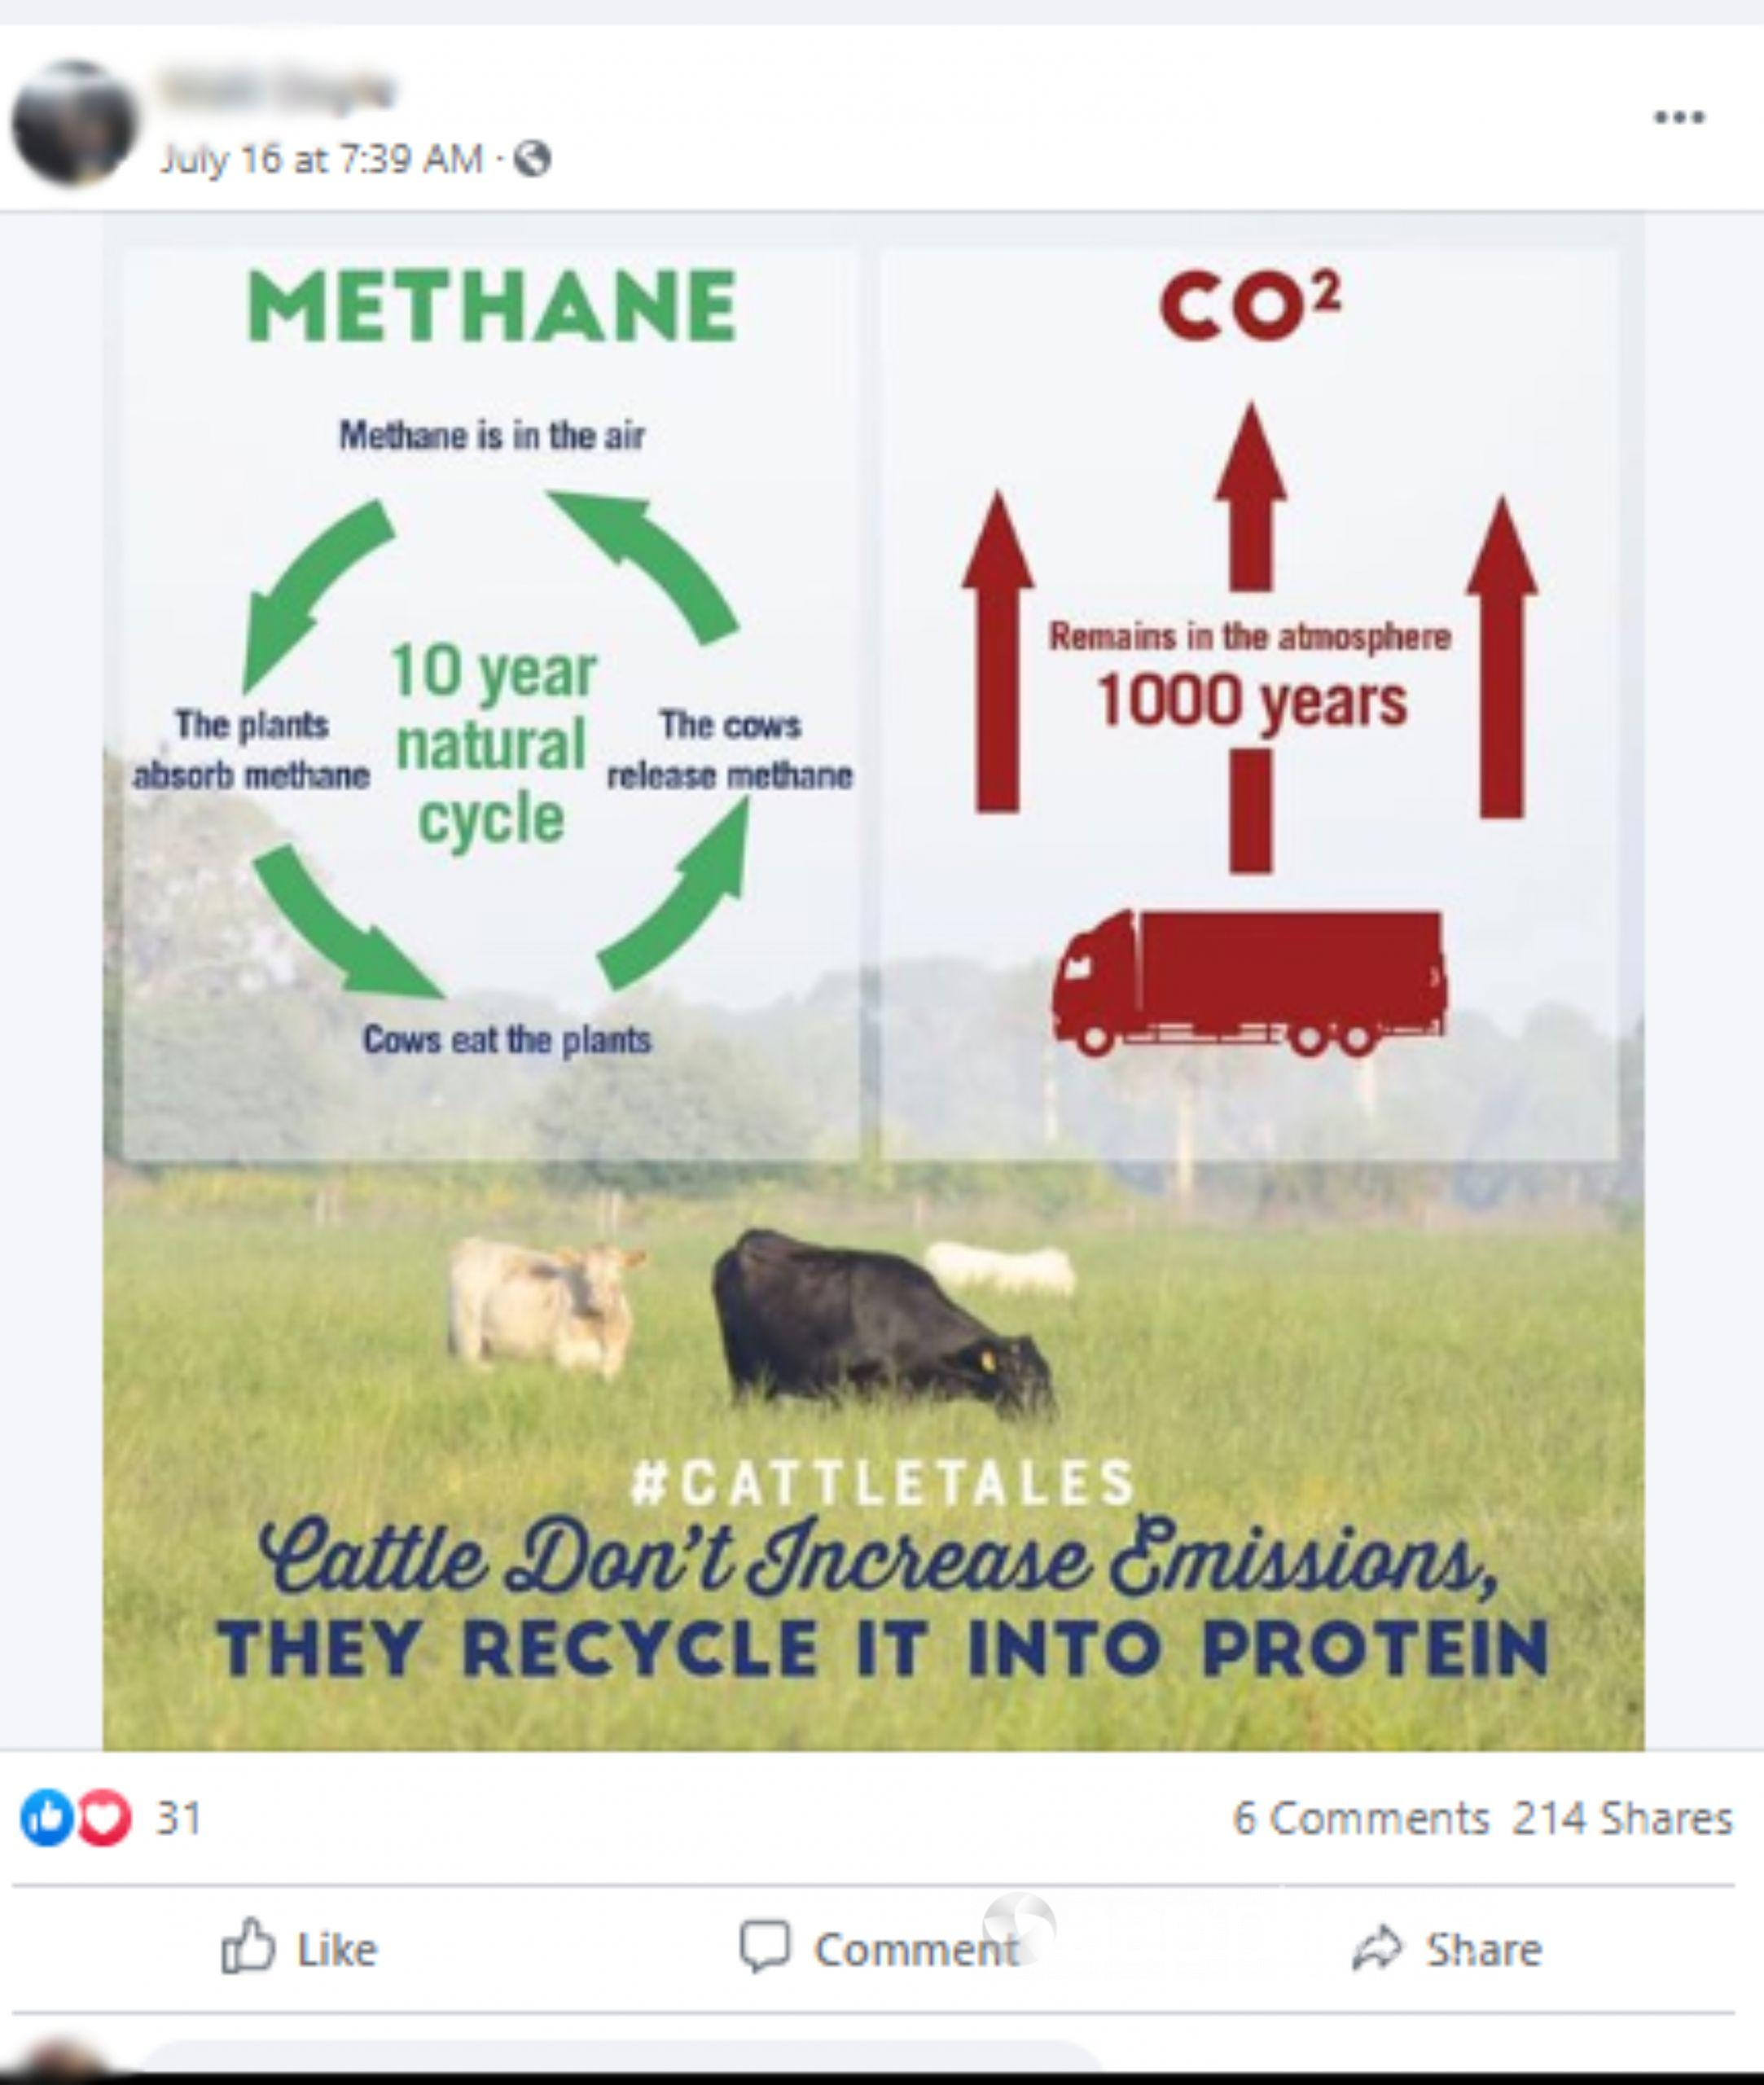 Claim that cow-caused methane doesn't raise emissions is just hot air